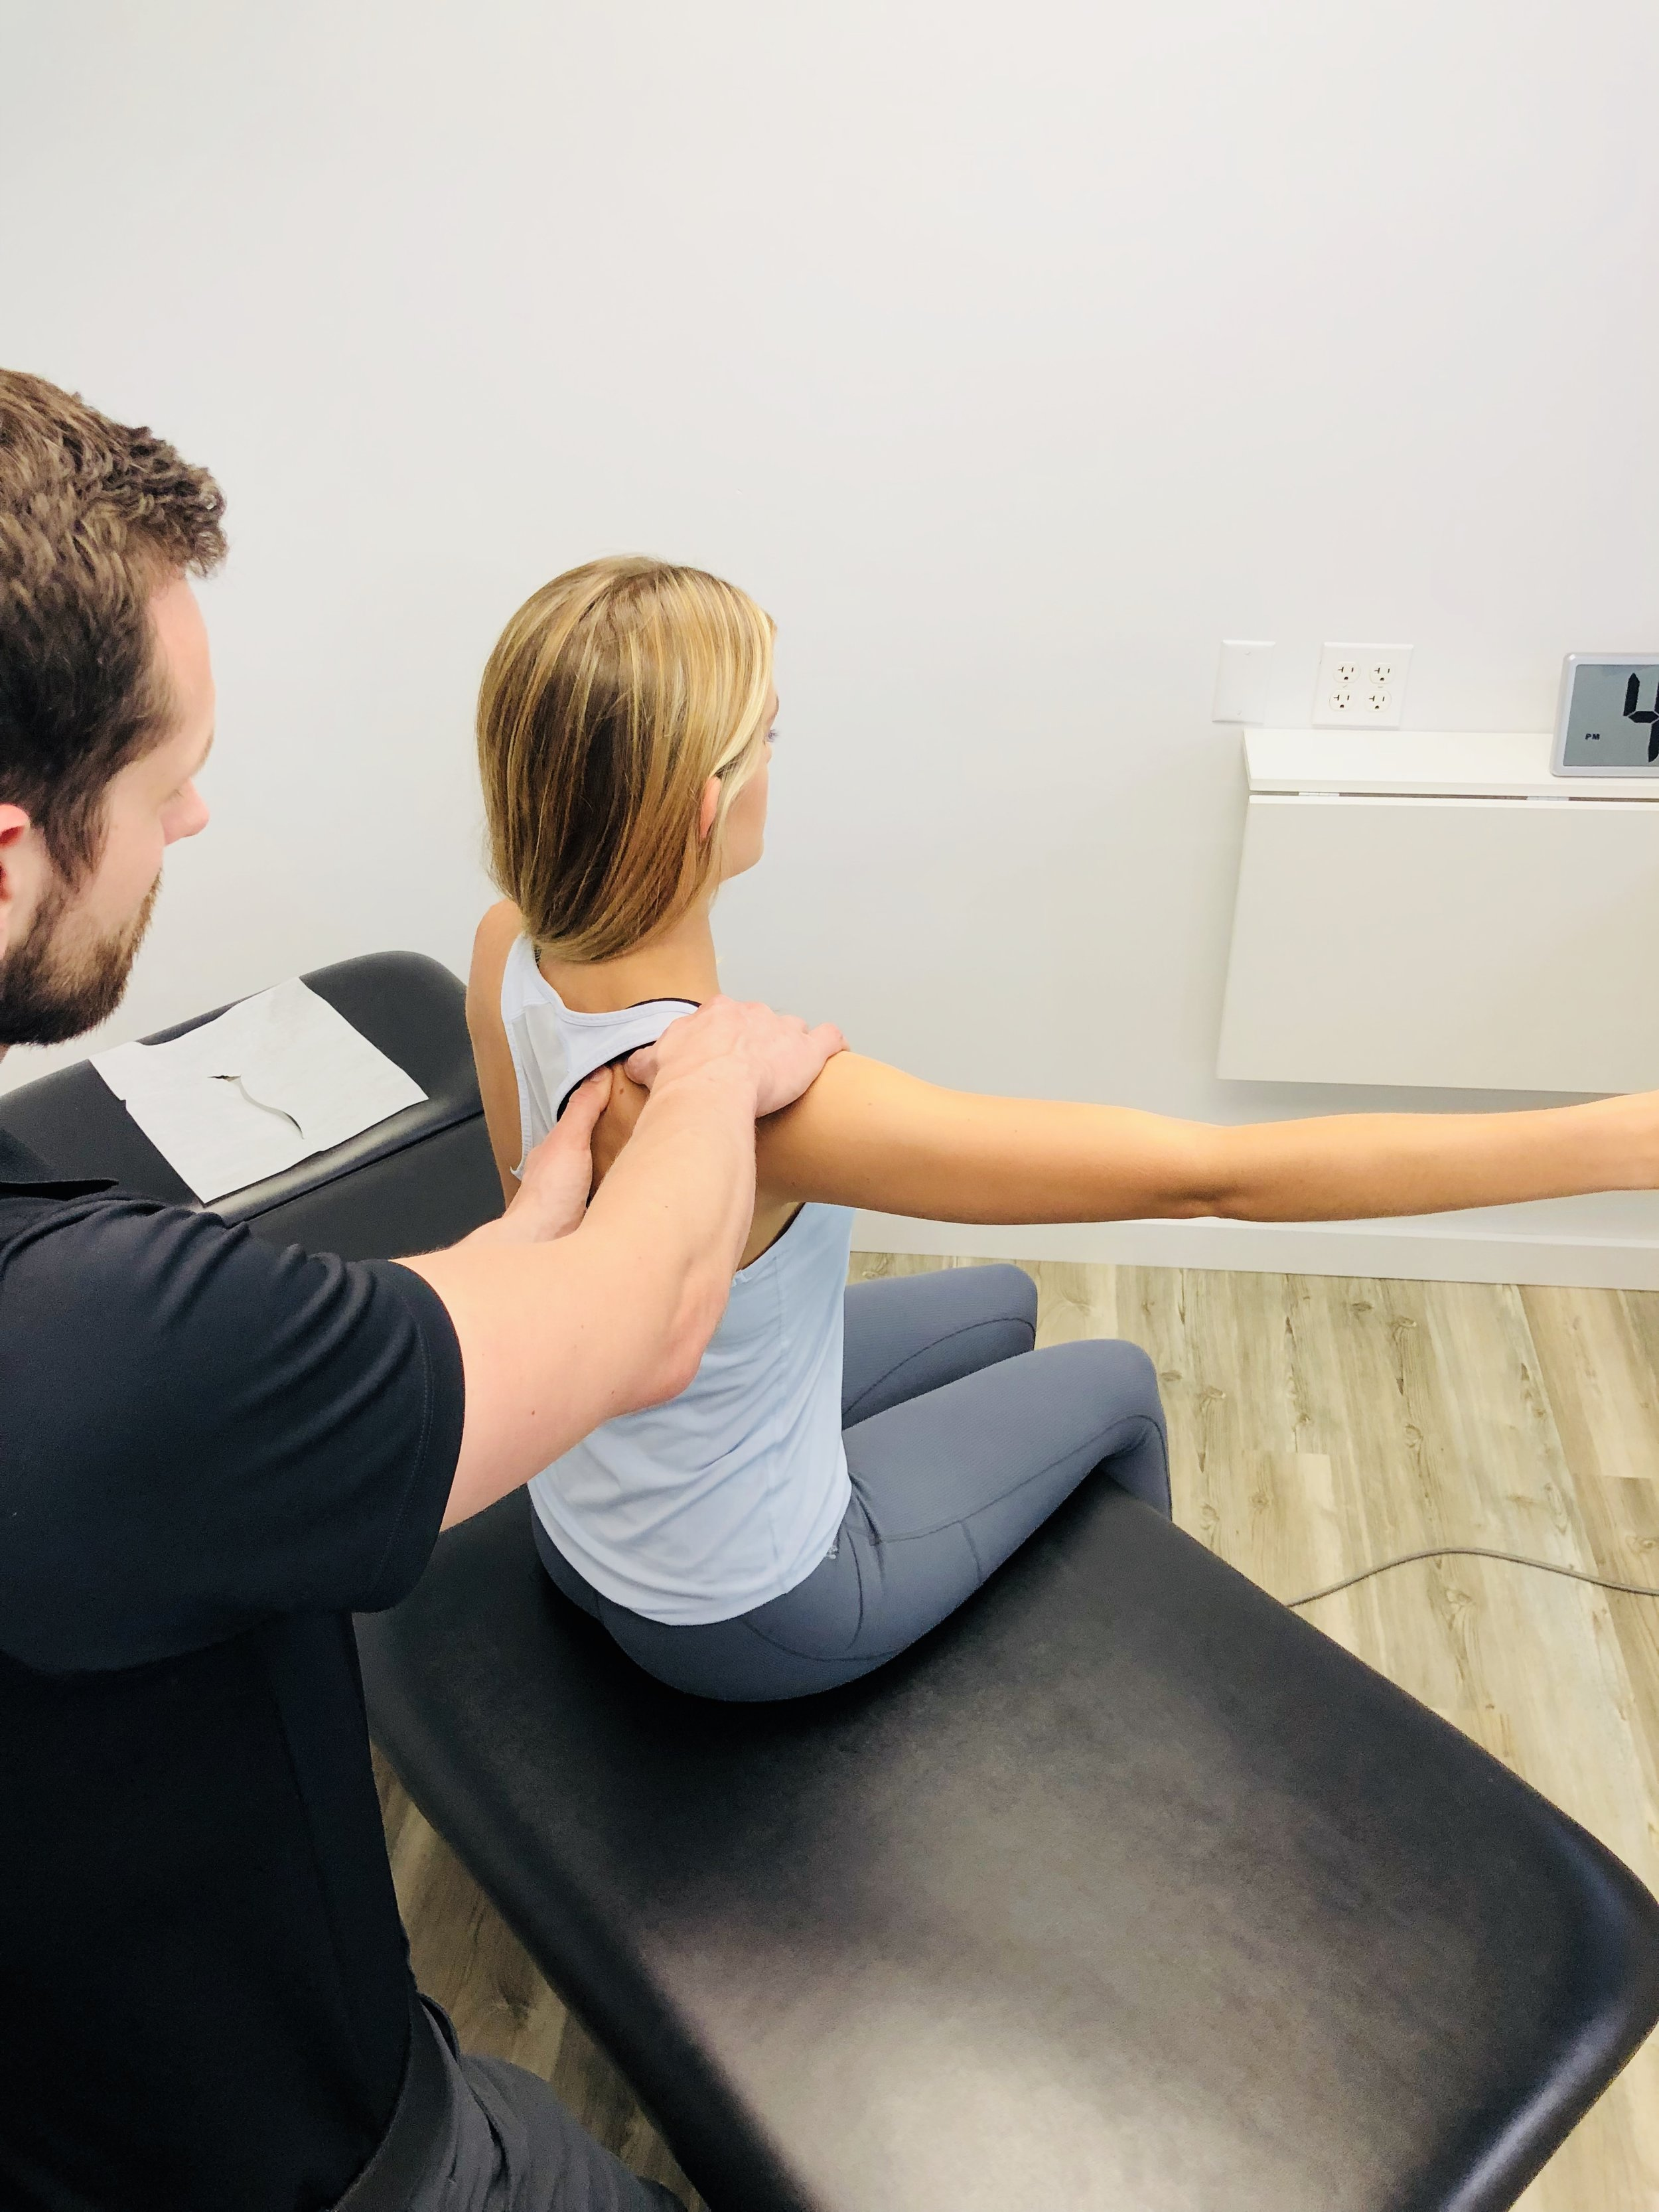 A few licenses to diagnose include Doctor of Chiropractic, Doctor of Physical Therapy, Doctor of Medicine